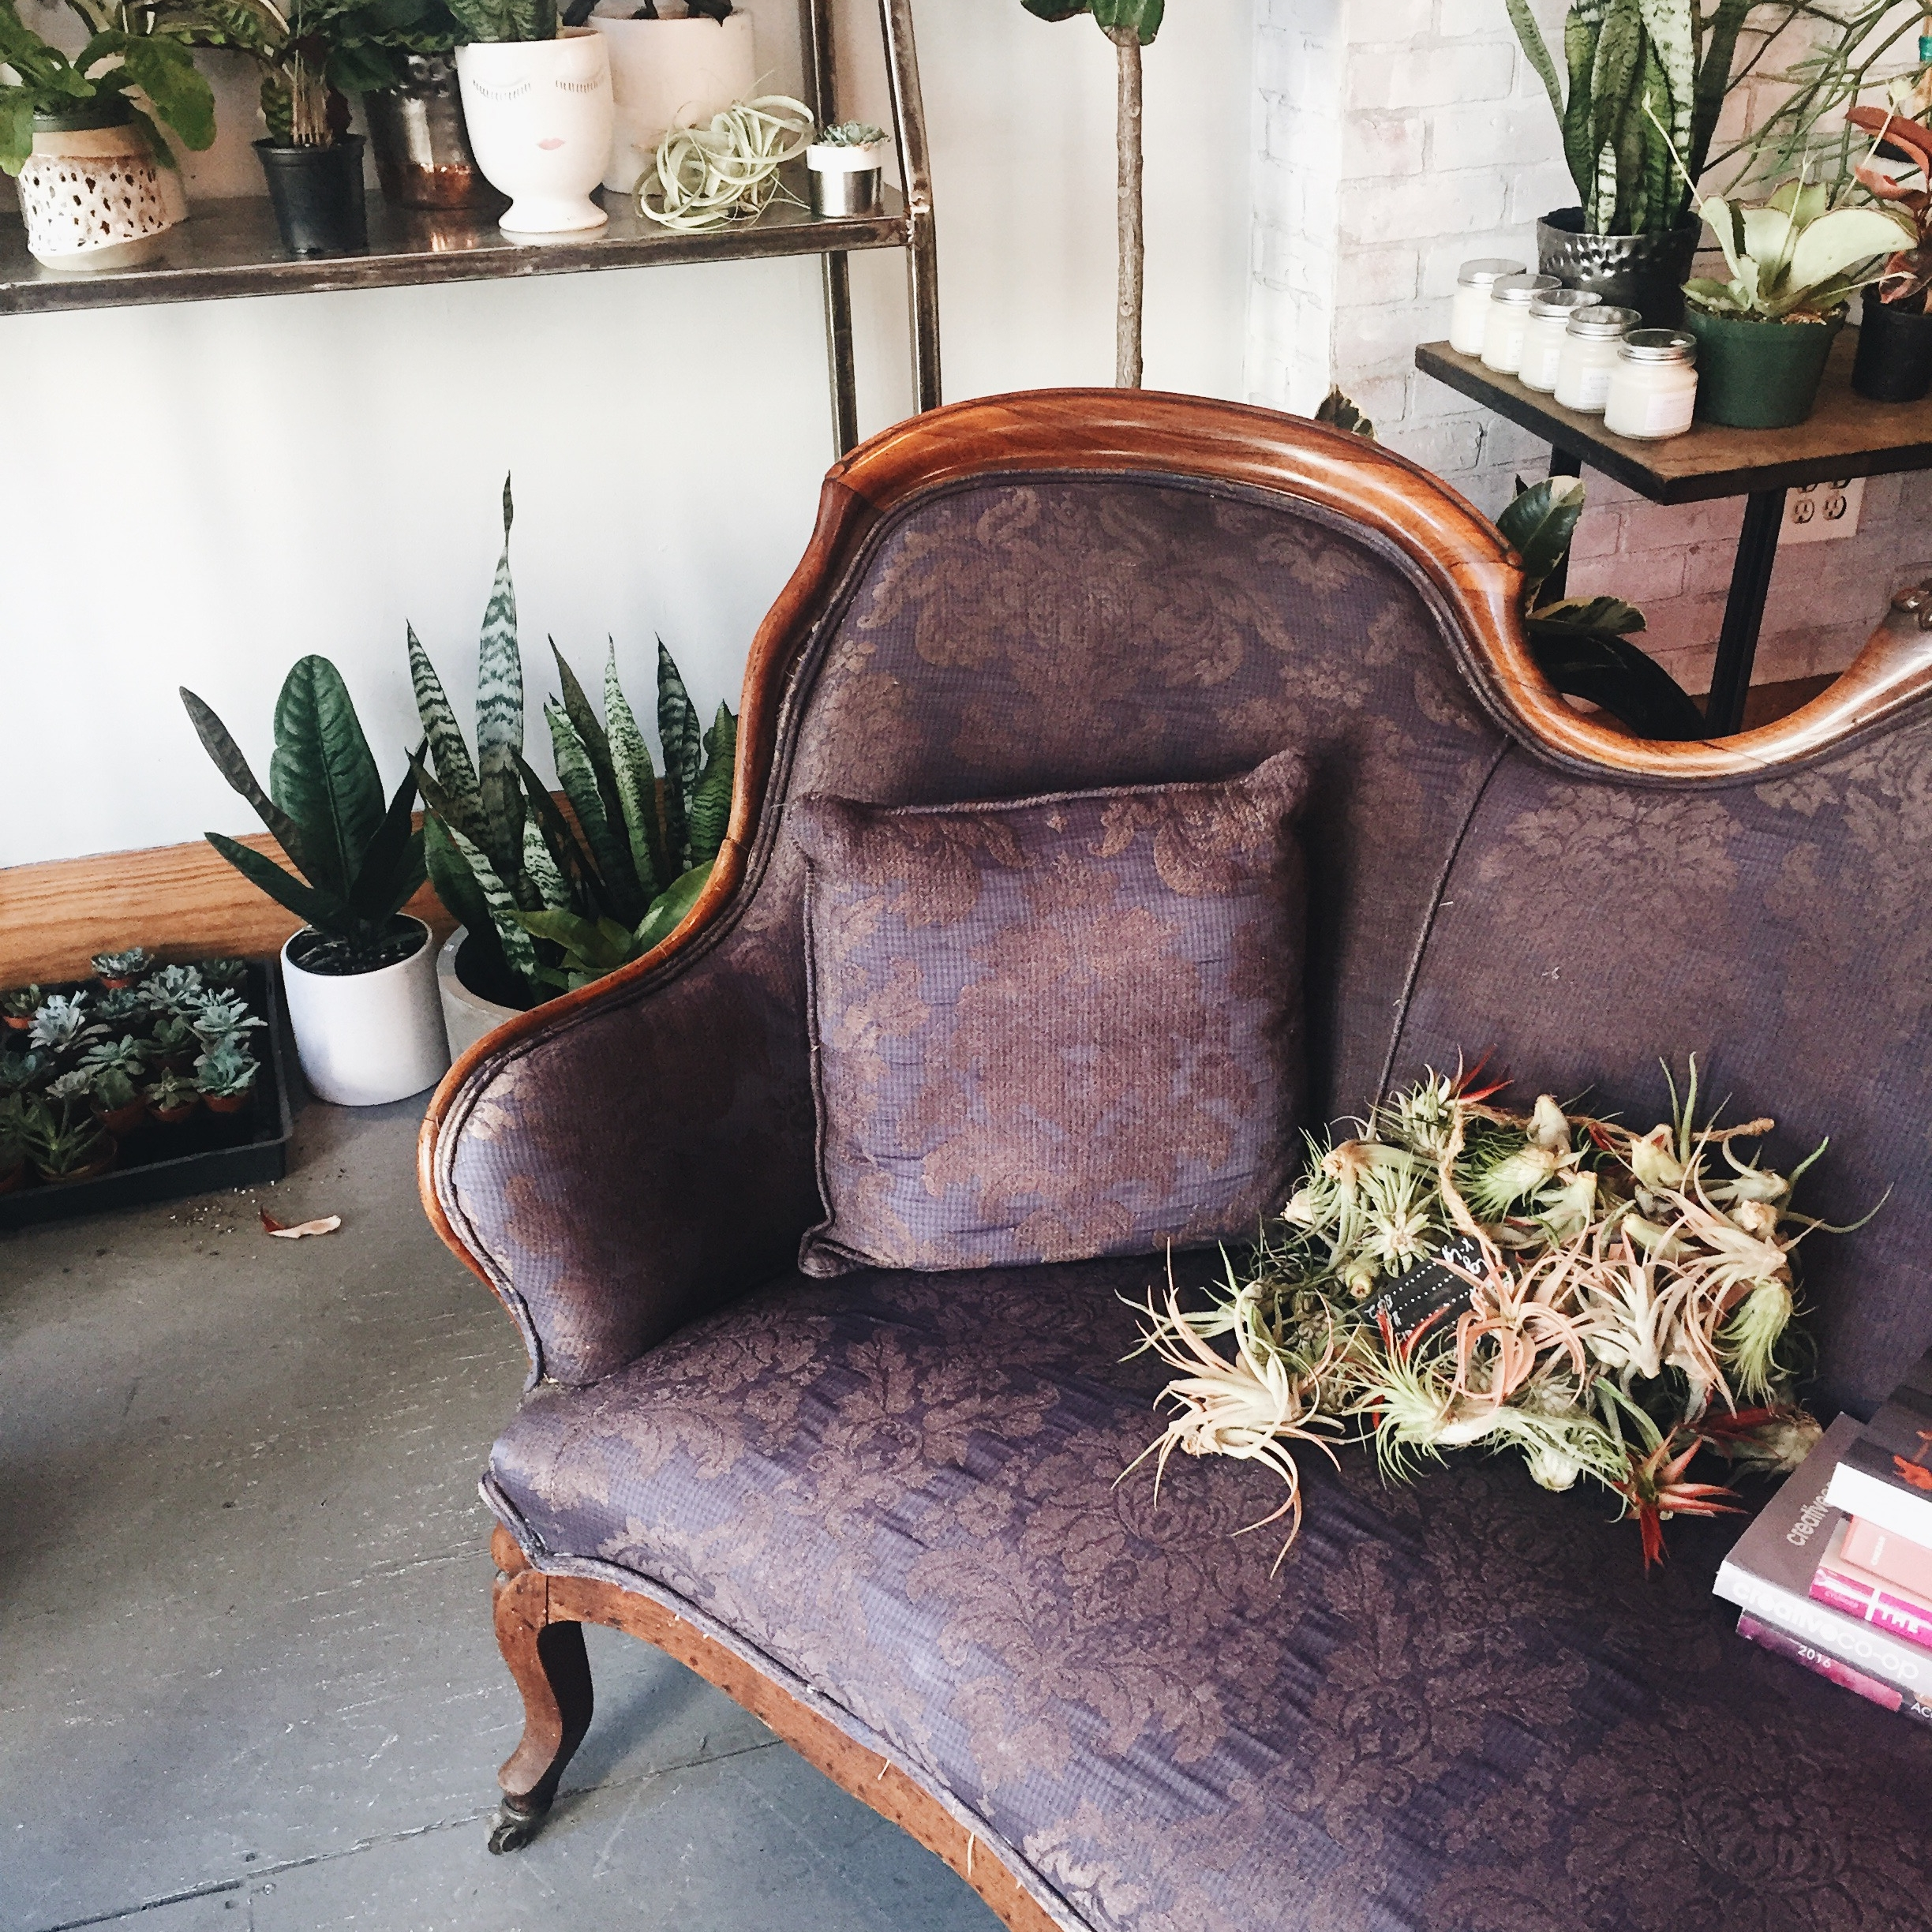 Flowers in the City: OTR's Gia and the Blooms    An Over-the-Rhine floral shop talks selling botanicals in a concrete jungle and connecting with their diverse range of customers.